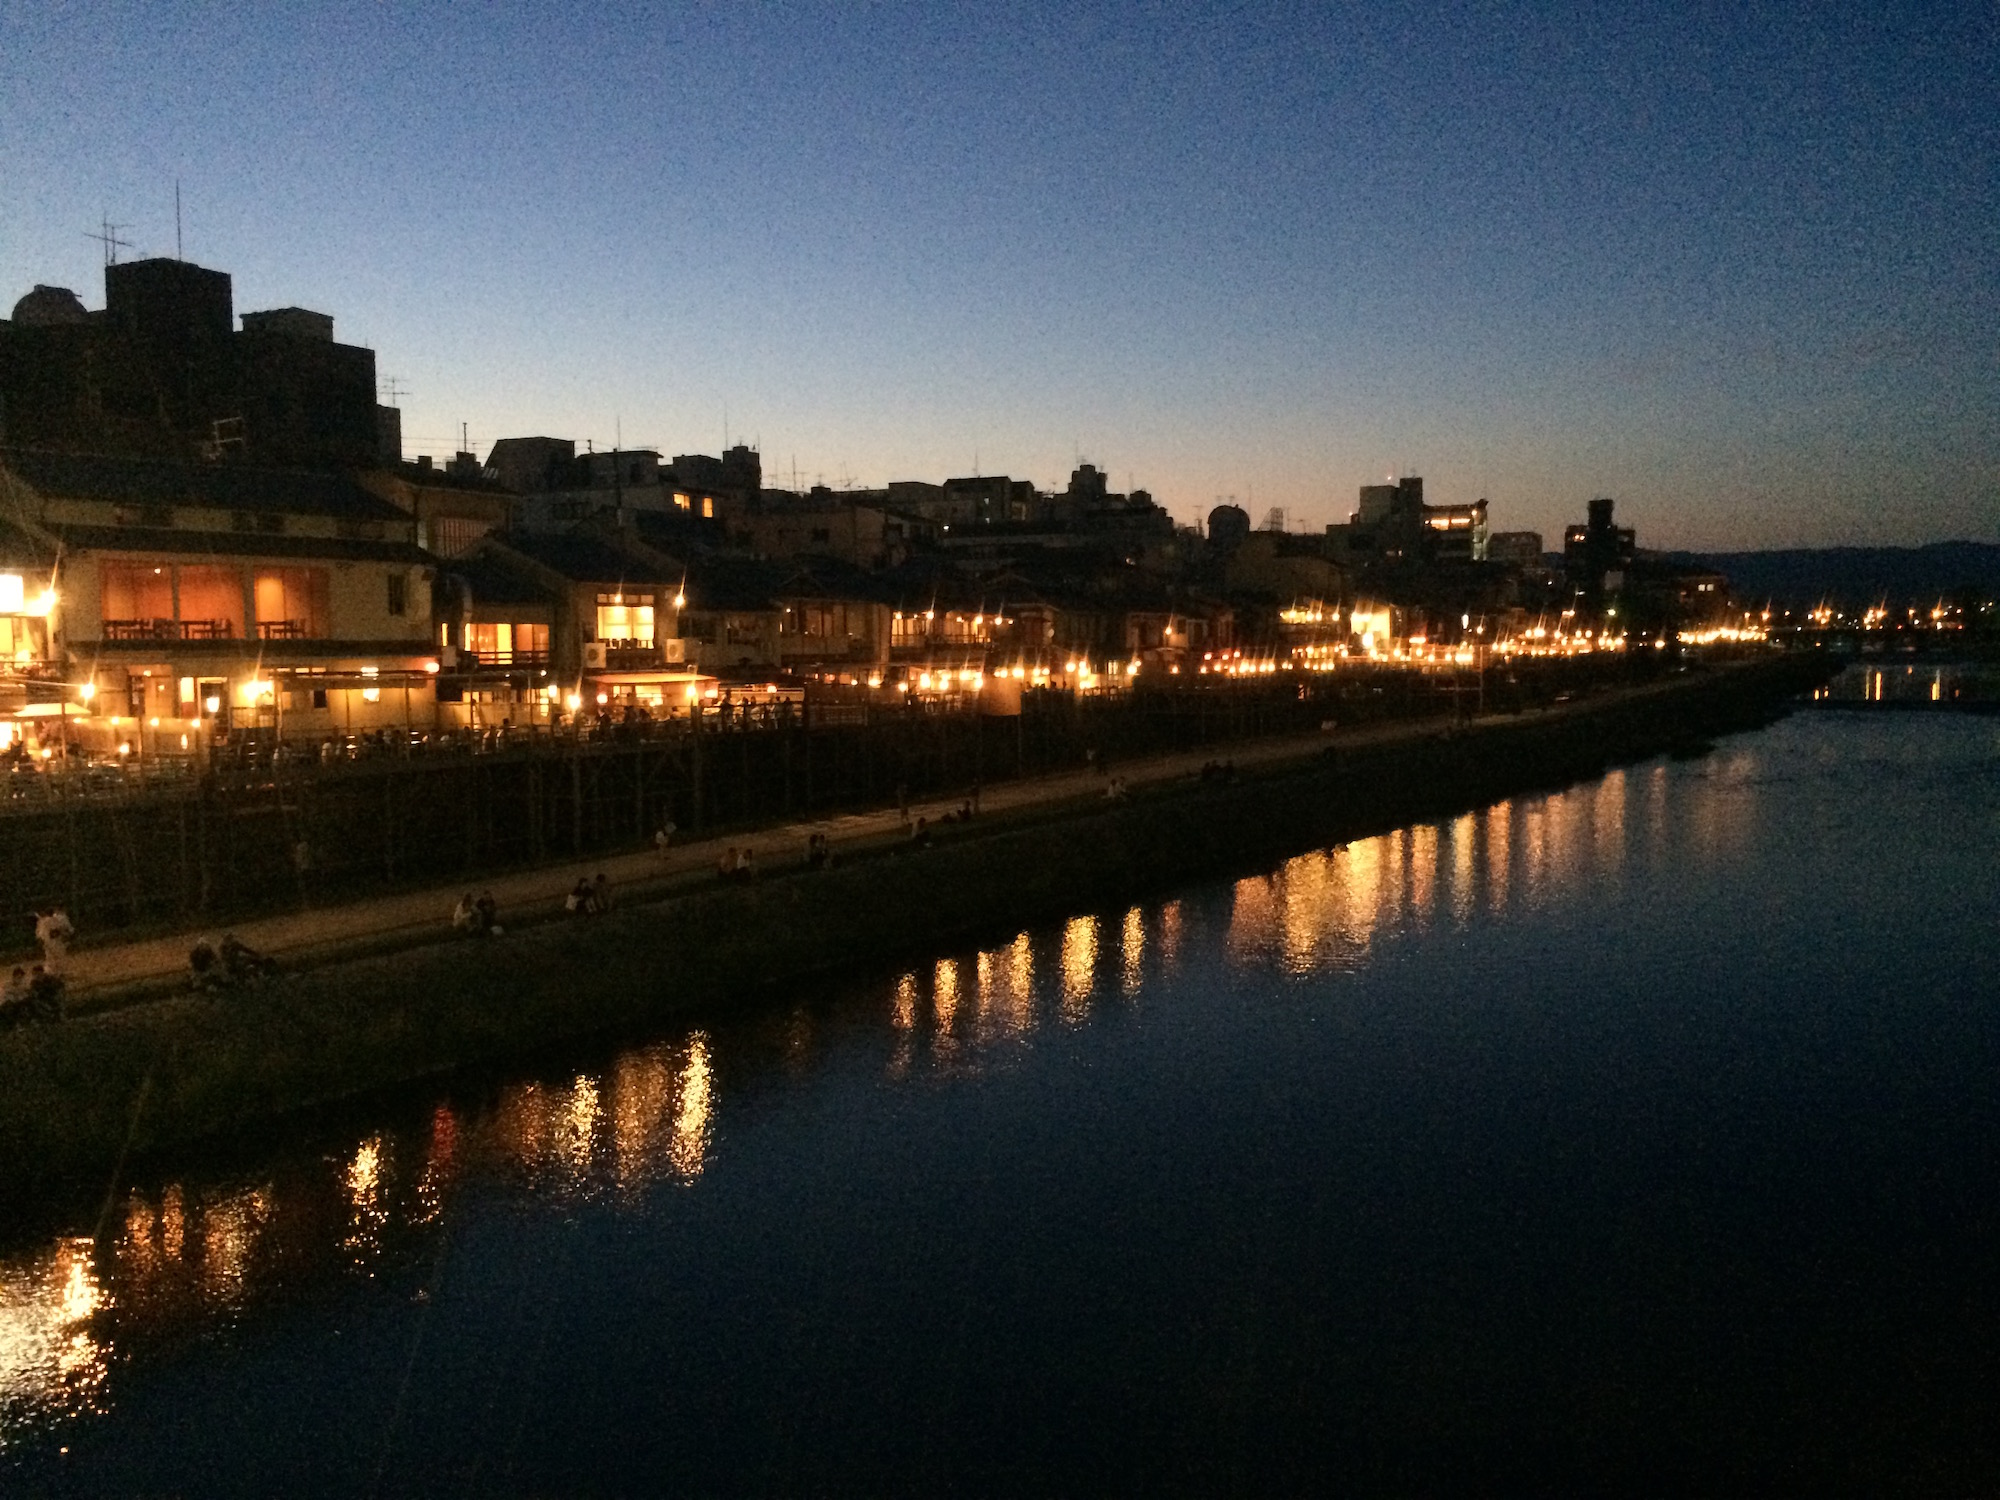 Nightime on the Kamo river